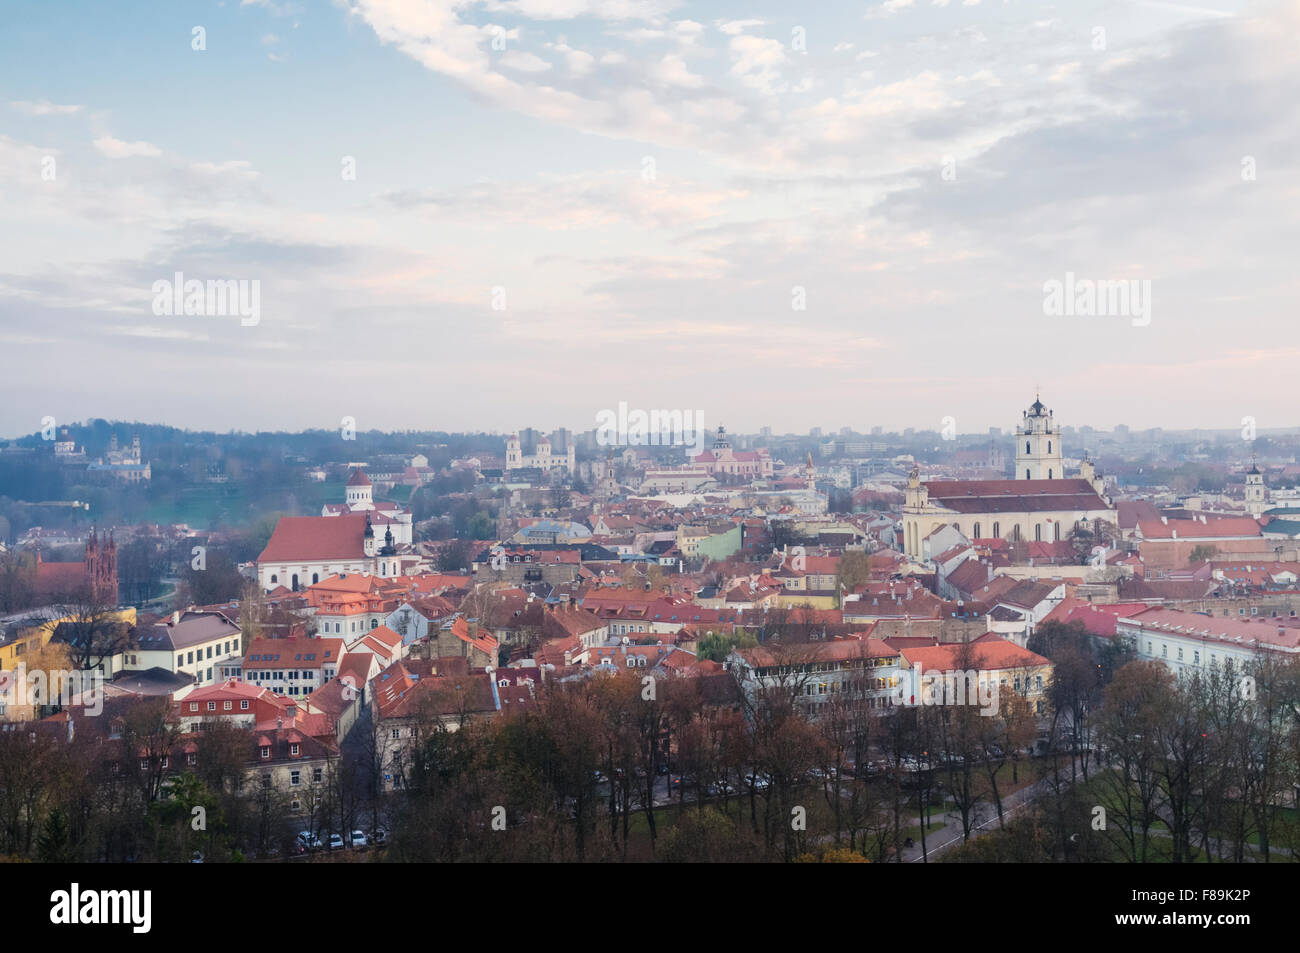 Old town overview.  Vilnius, Lithuania, Europe - Stock Image